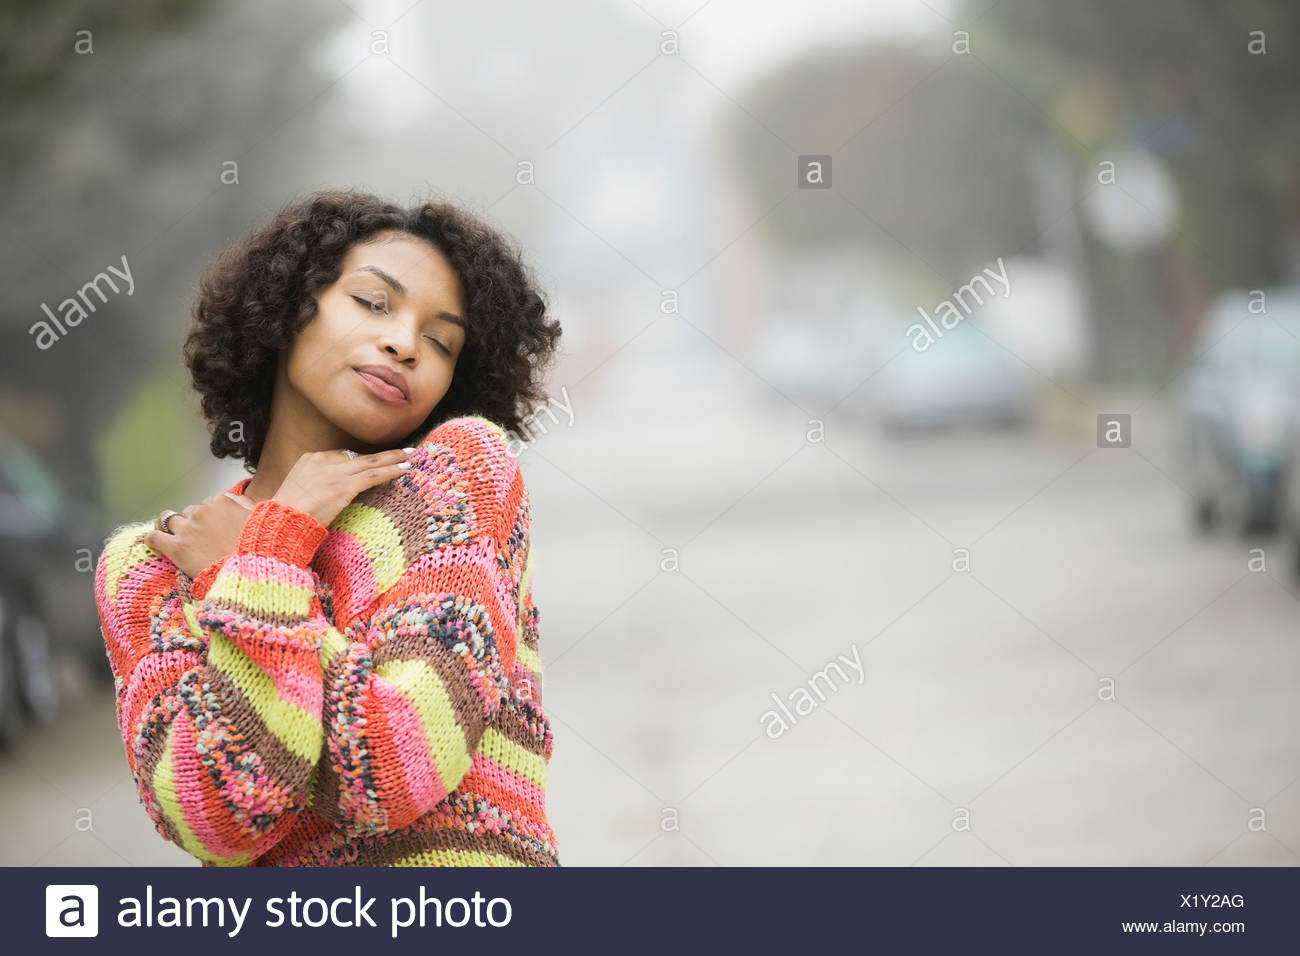 Woman standing outdoors with arms crossed - Stock Image